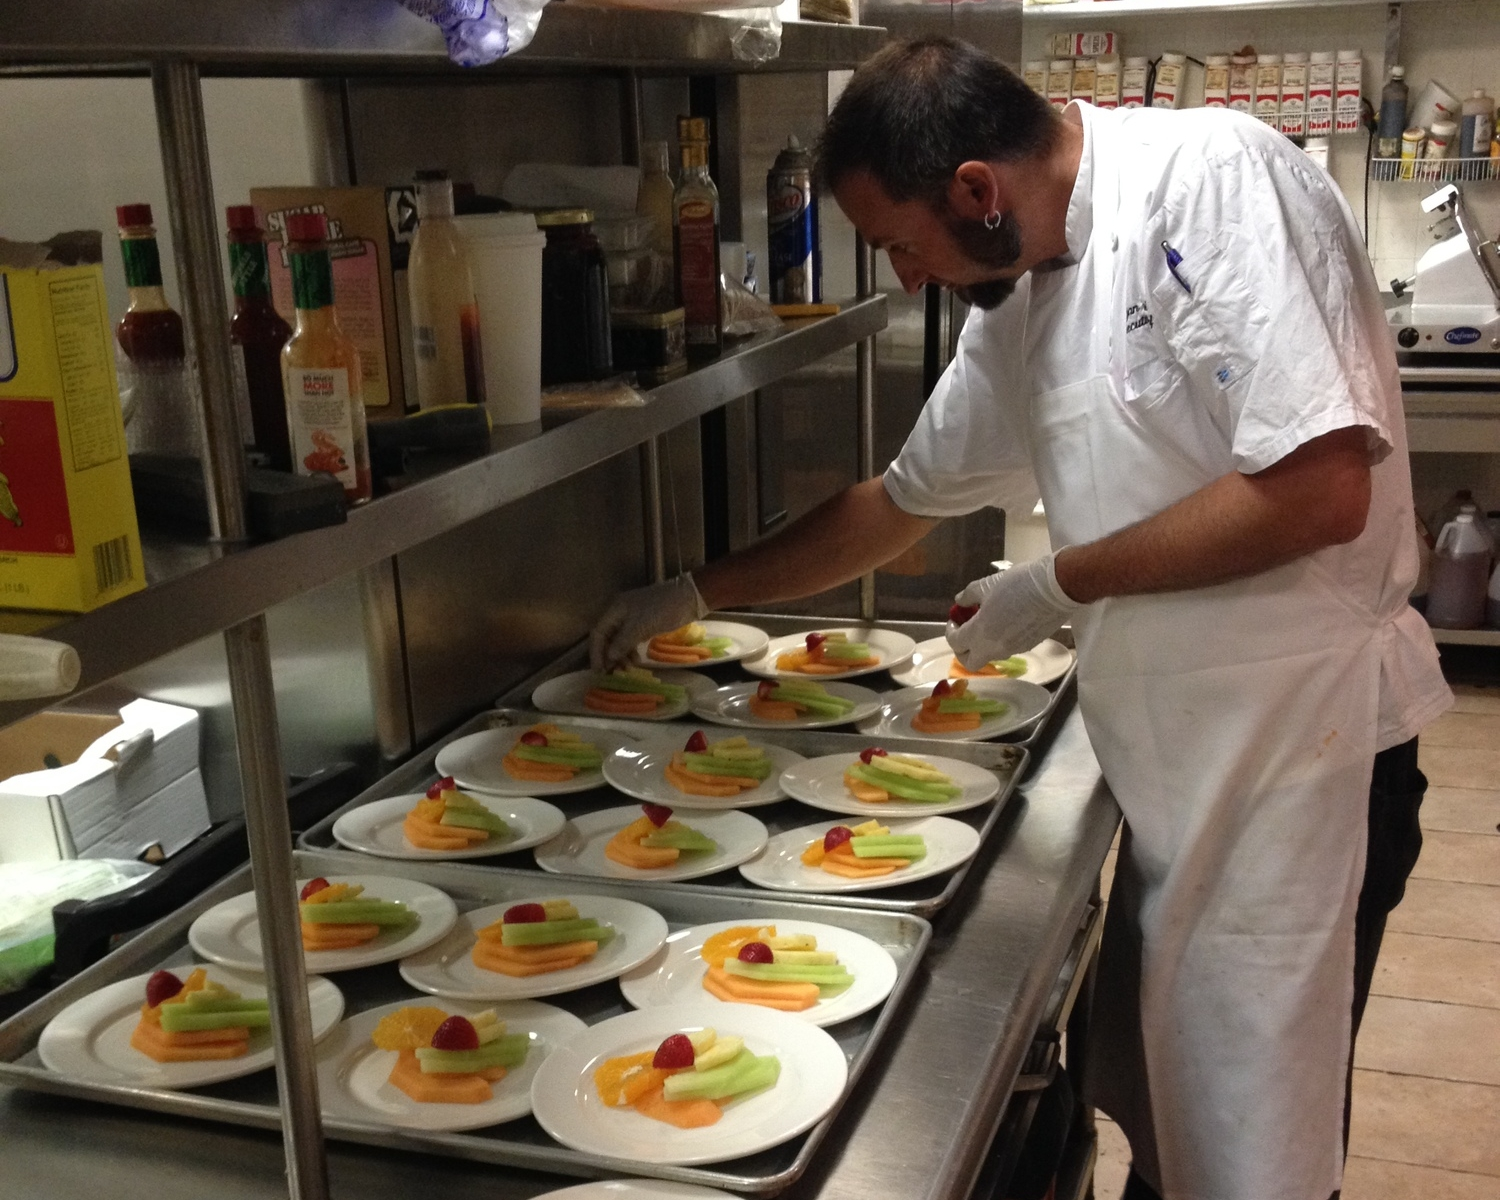 Executive Chef Bryan Tomko preparing a Fruit Plate Dessert